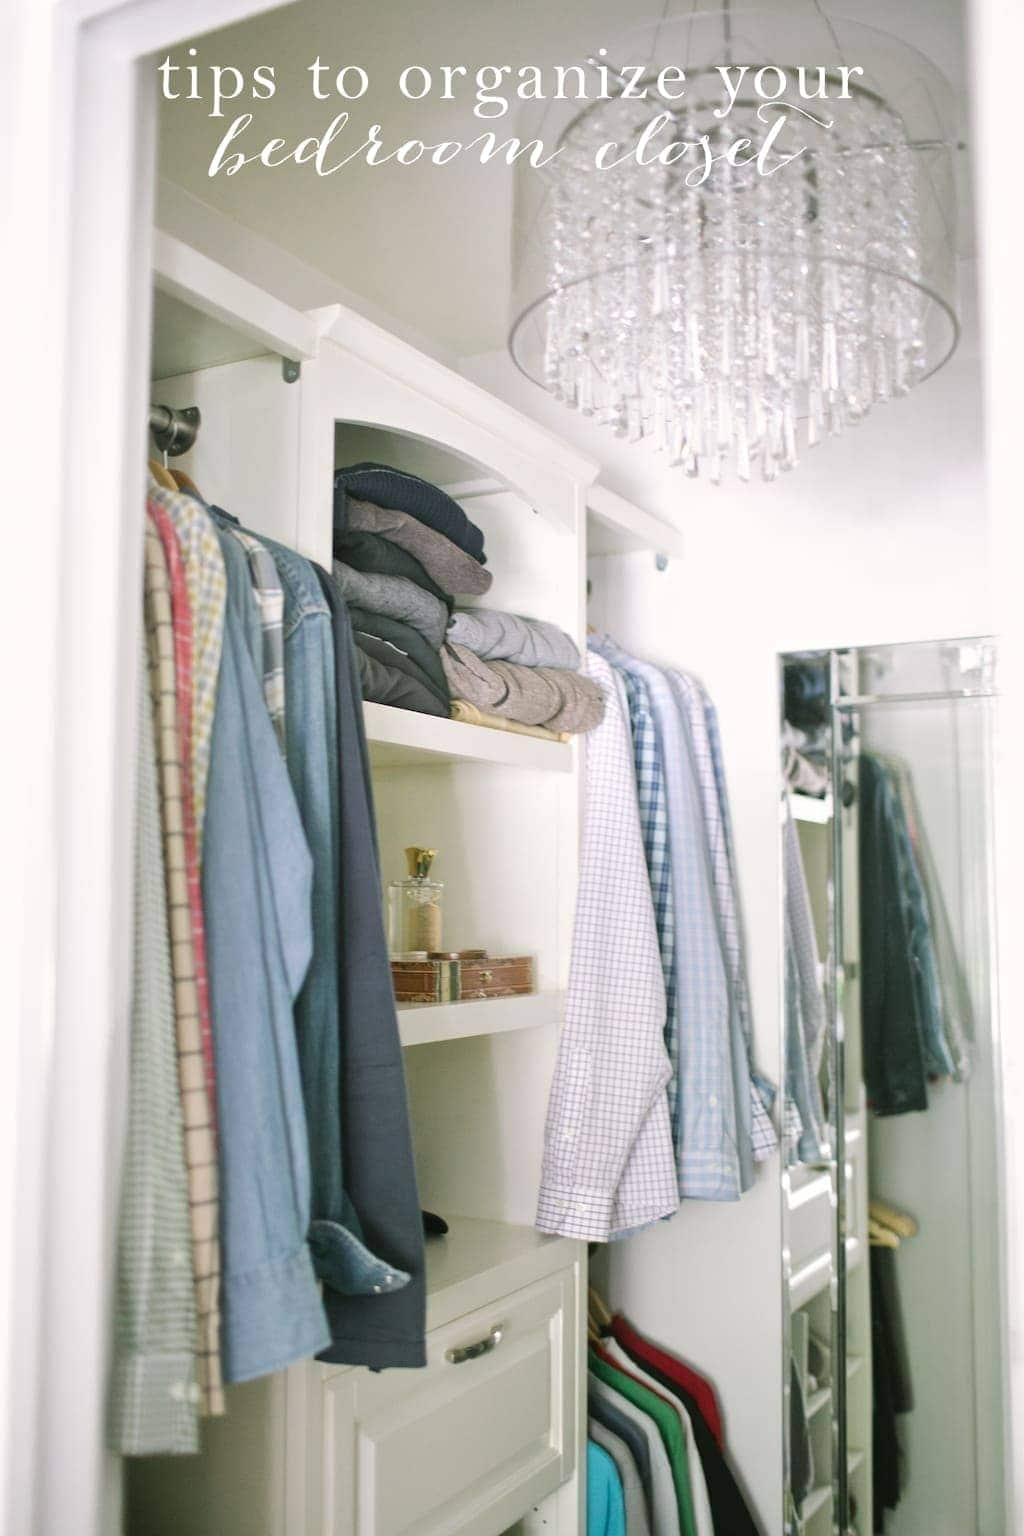 Julie blanner a lifestyle home and entertaining blog for Ideas to organize closets